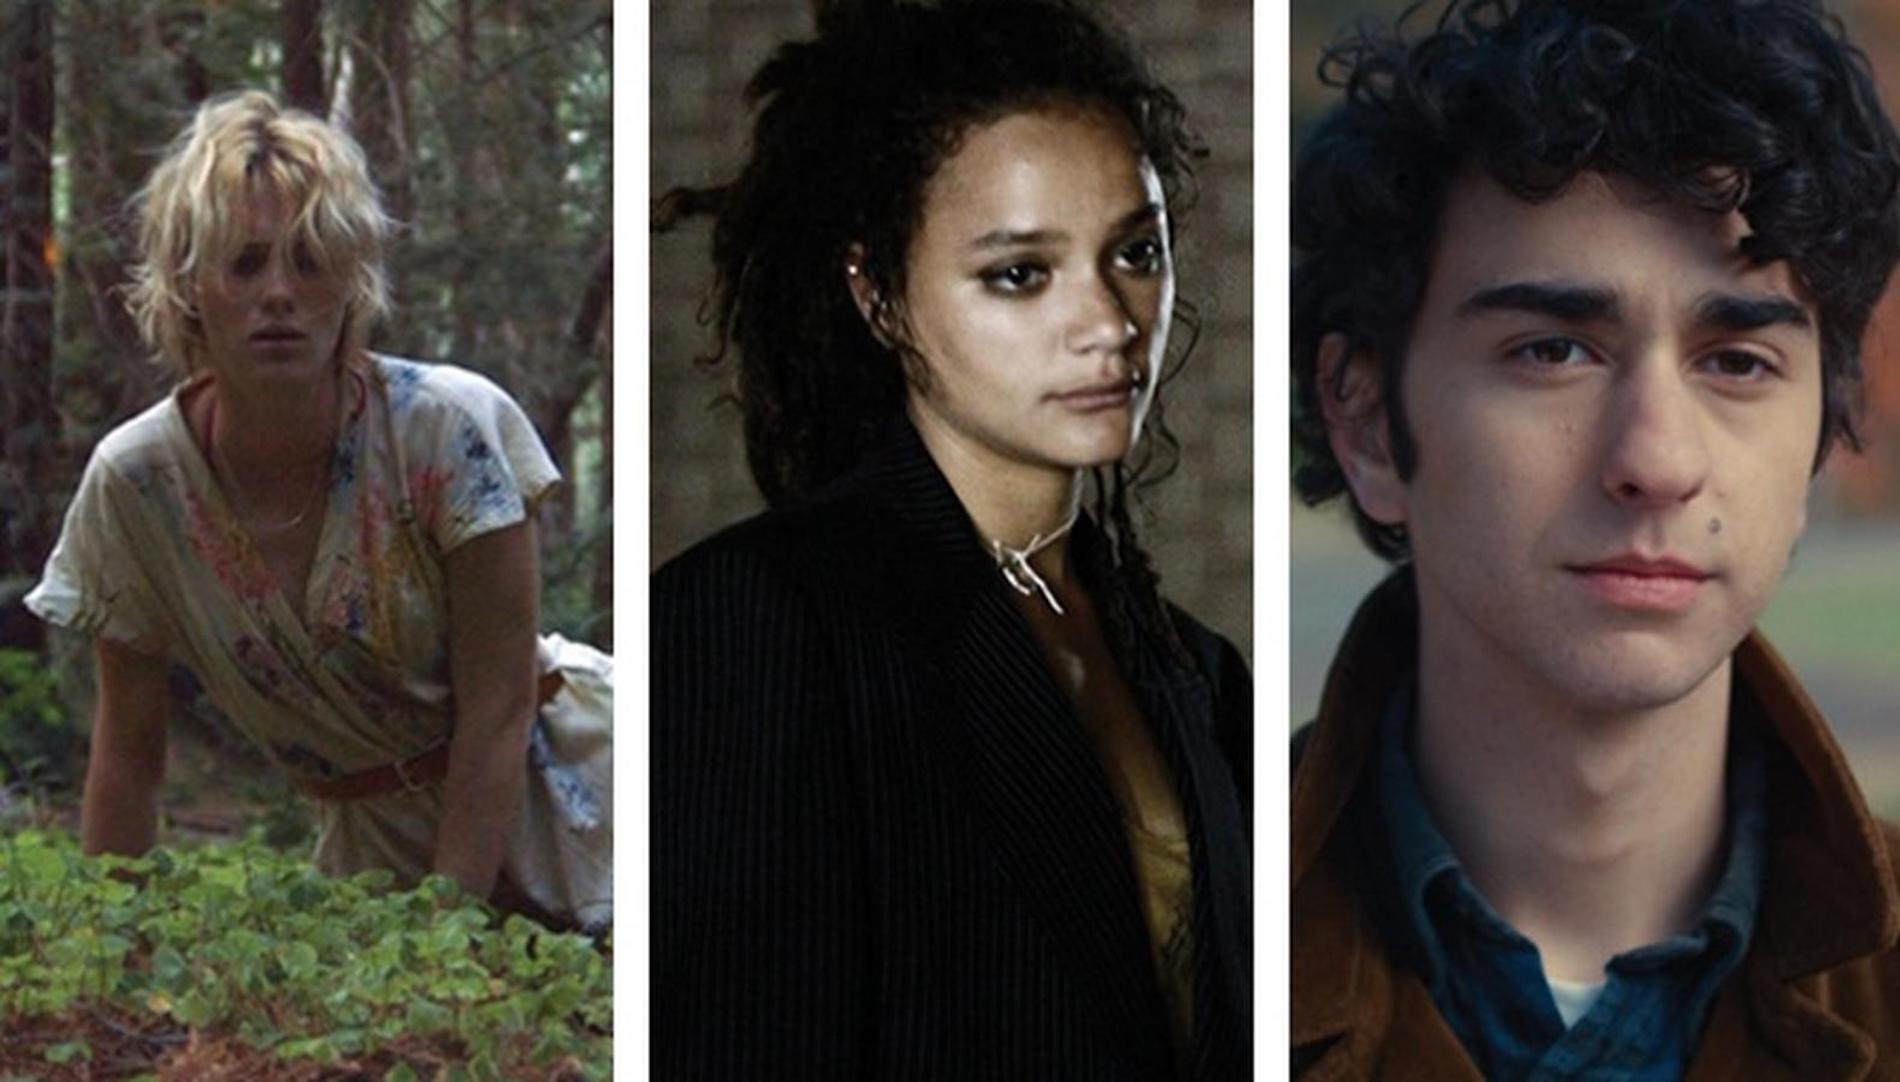 3 Actors on How to Act in an Indie Film